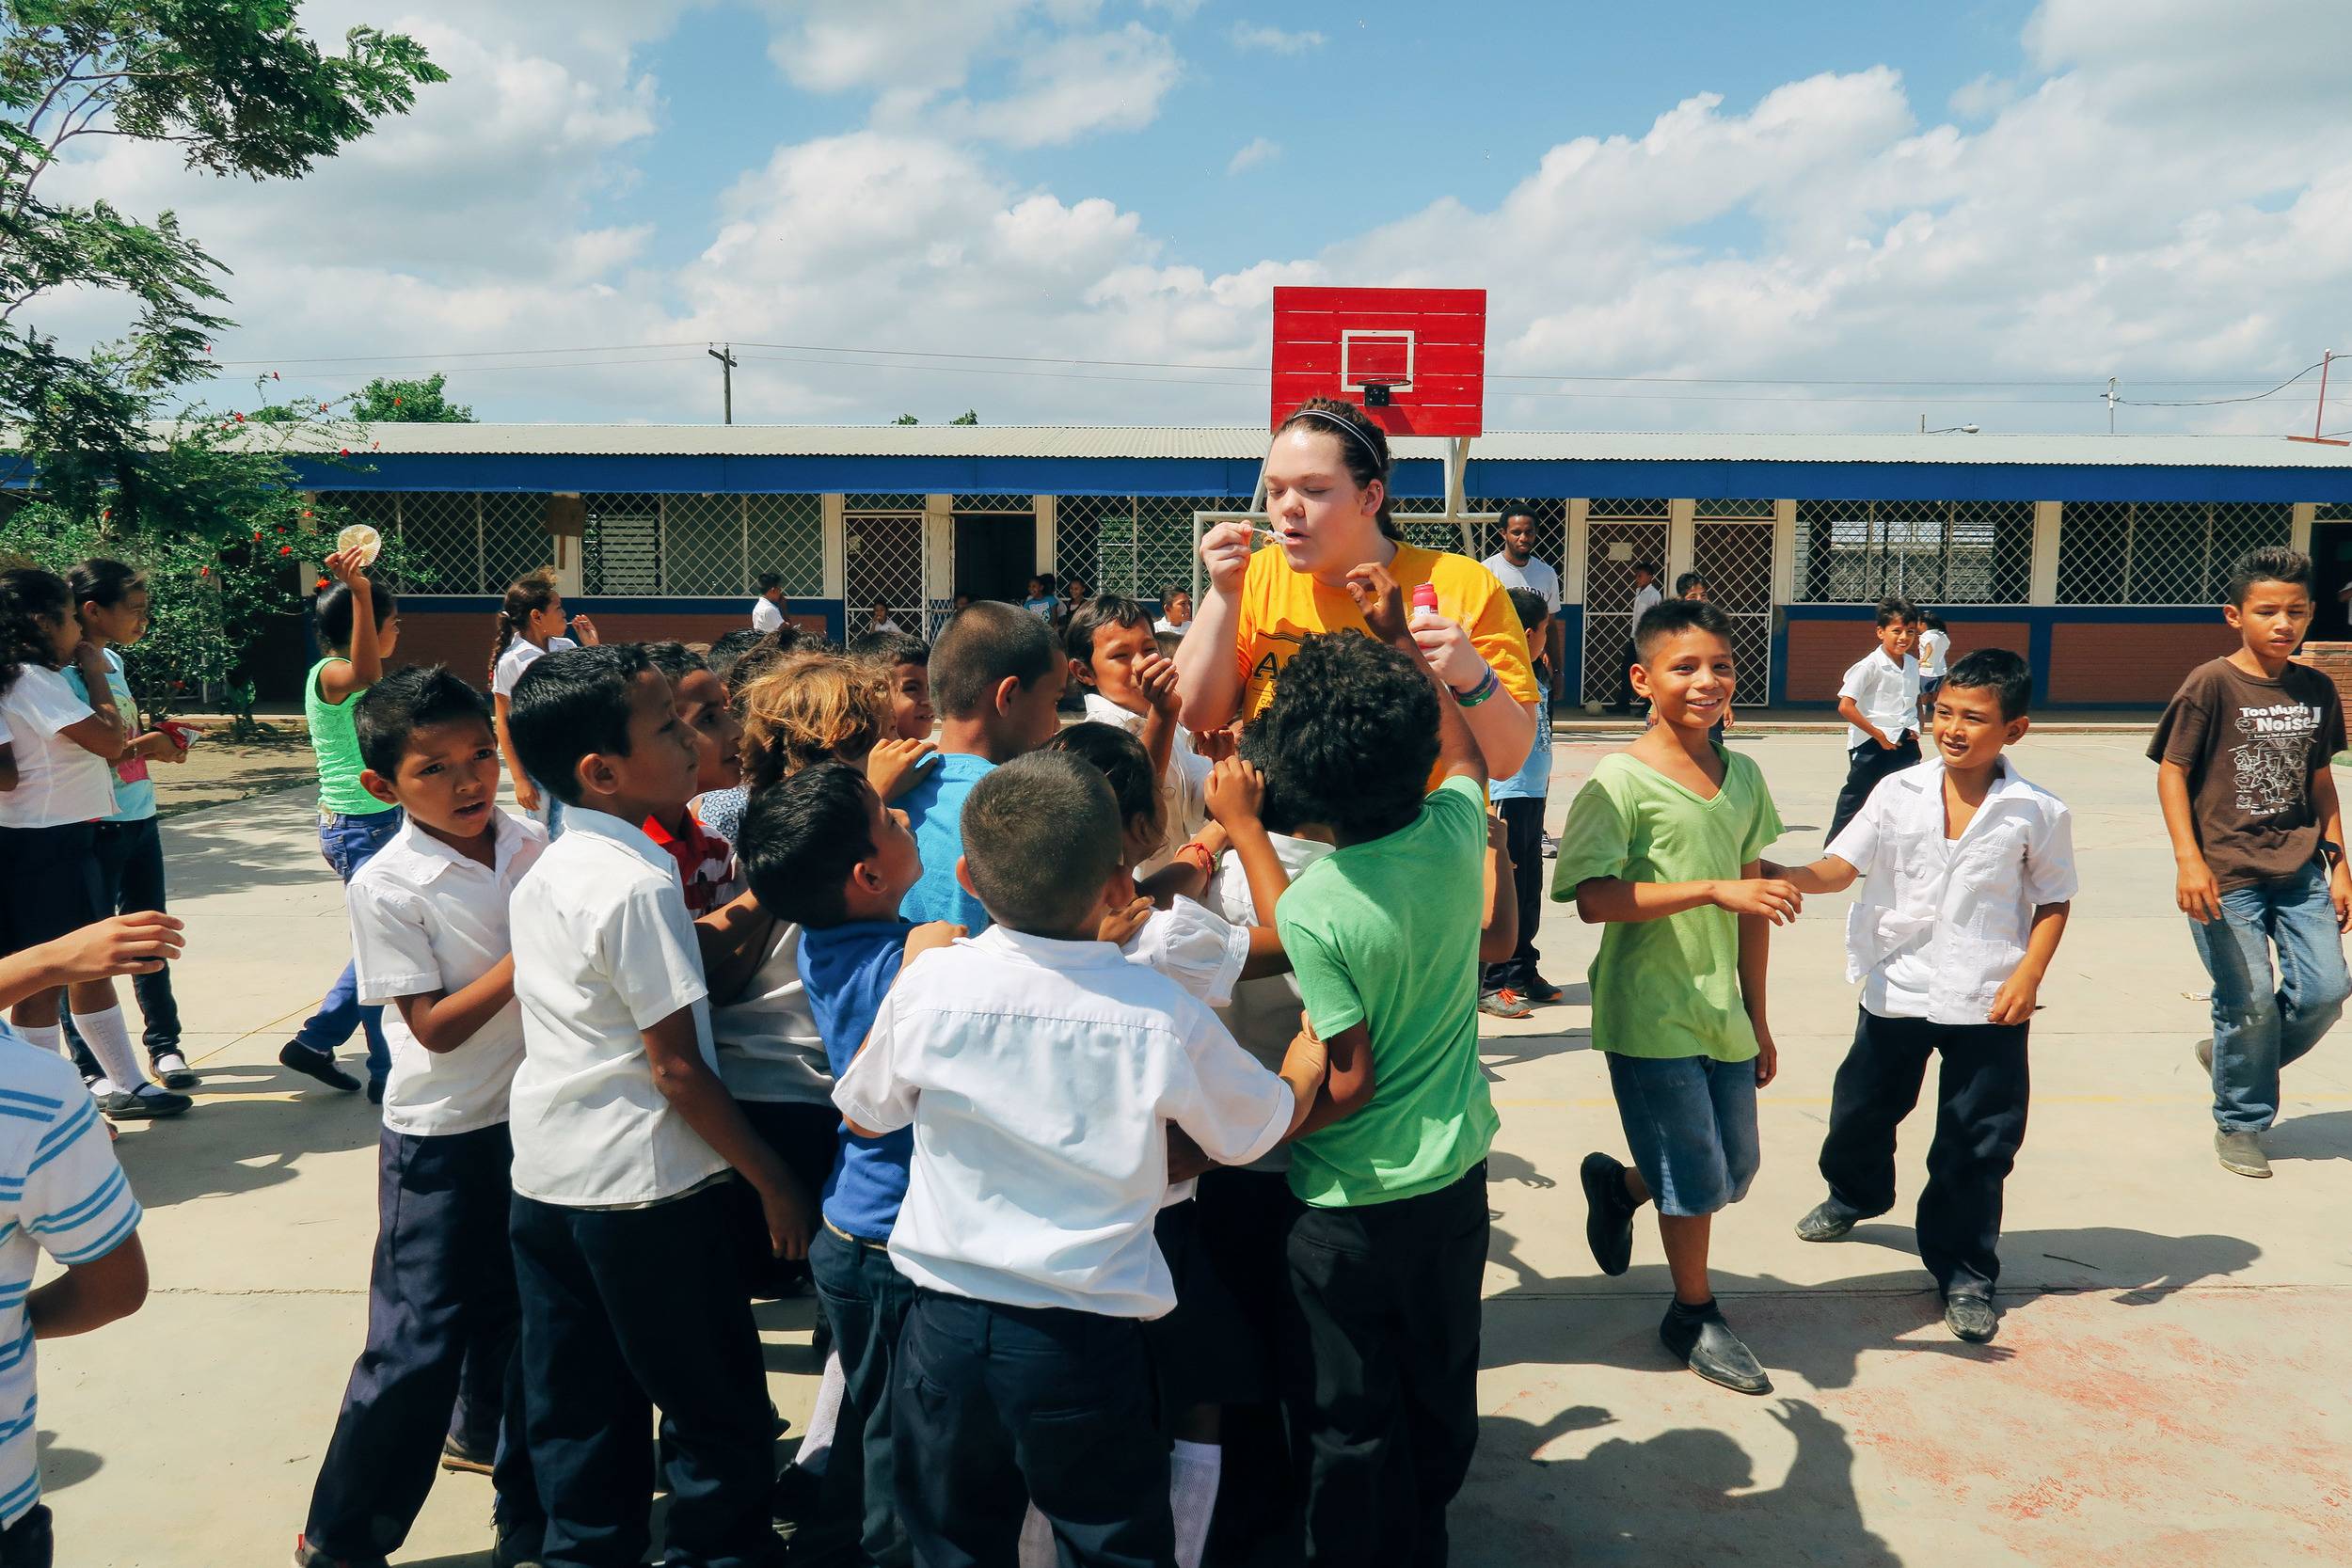 The School here in Tipitapa, Nicaragua. We came to play with them during recess time and boy do they love bubbles.